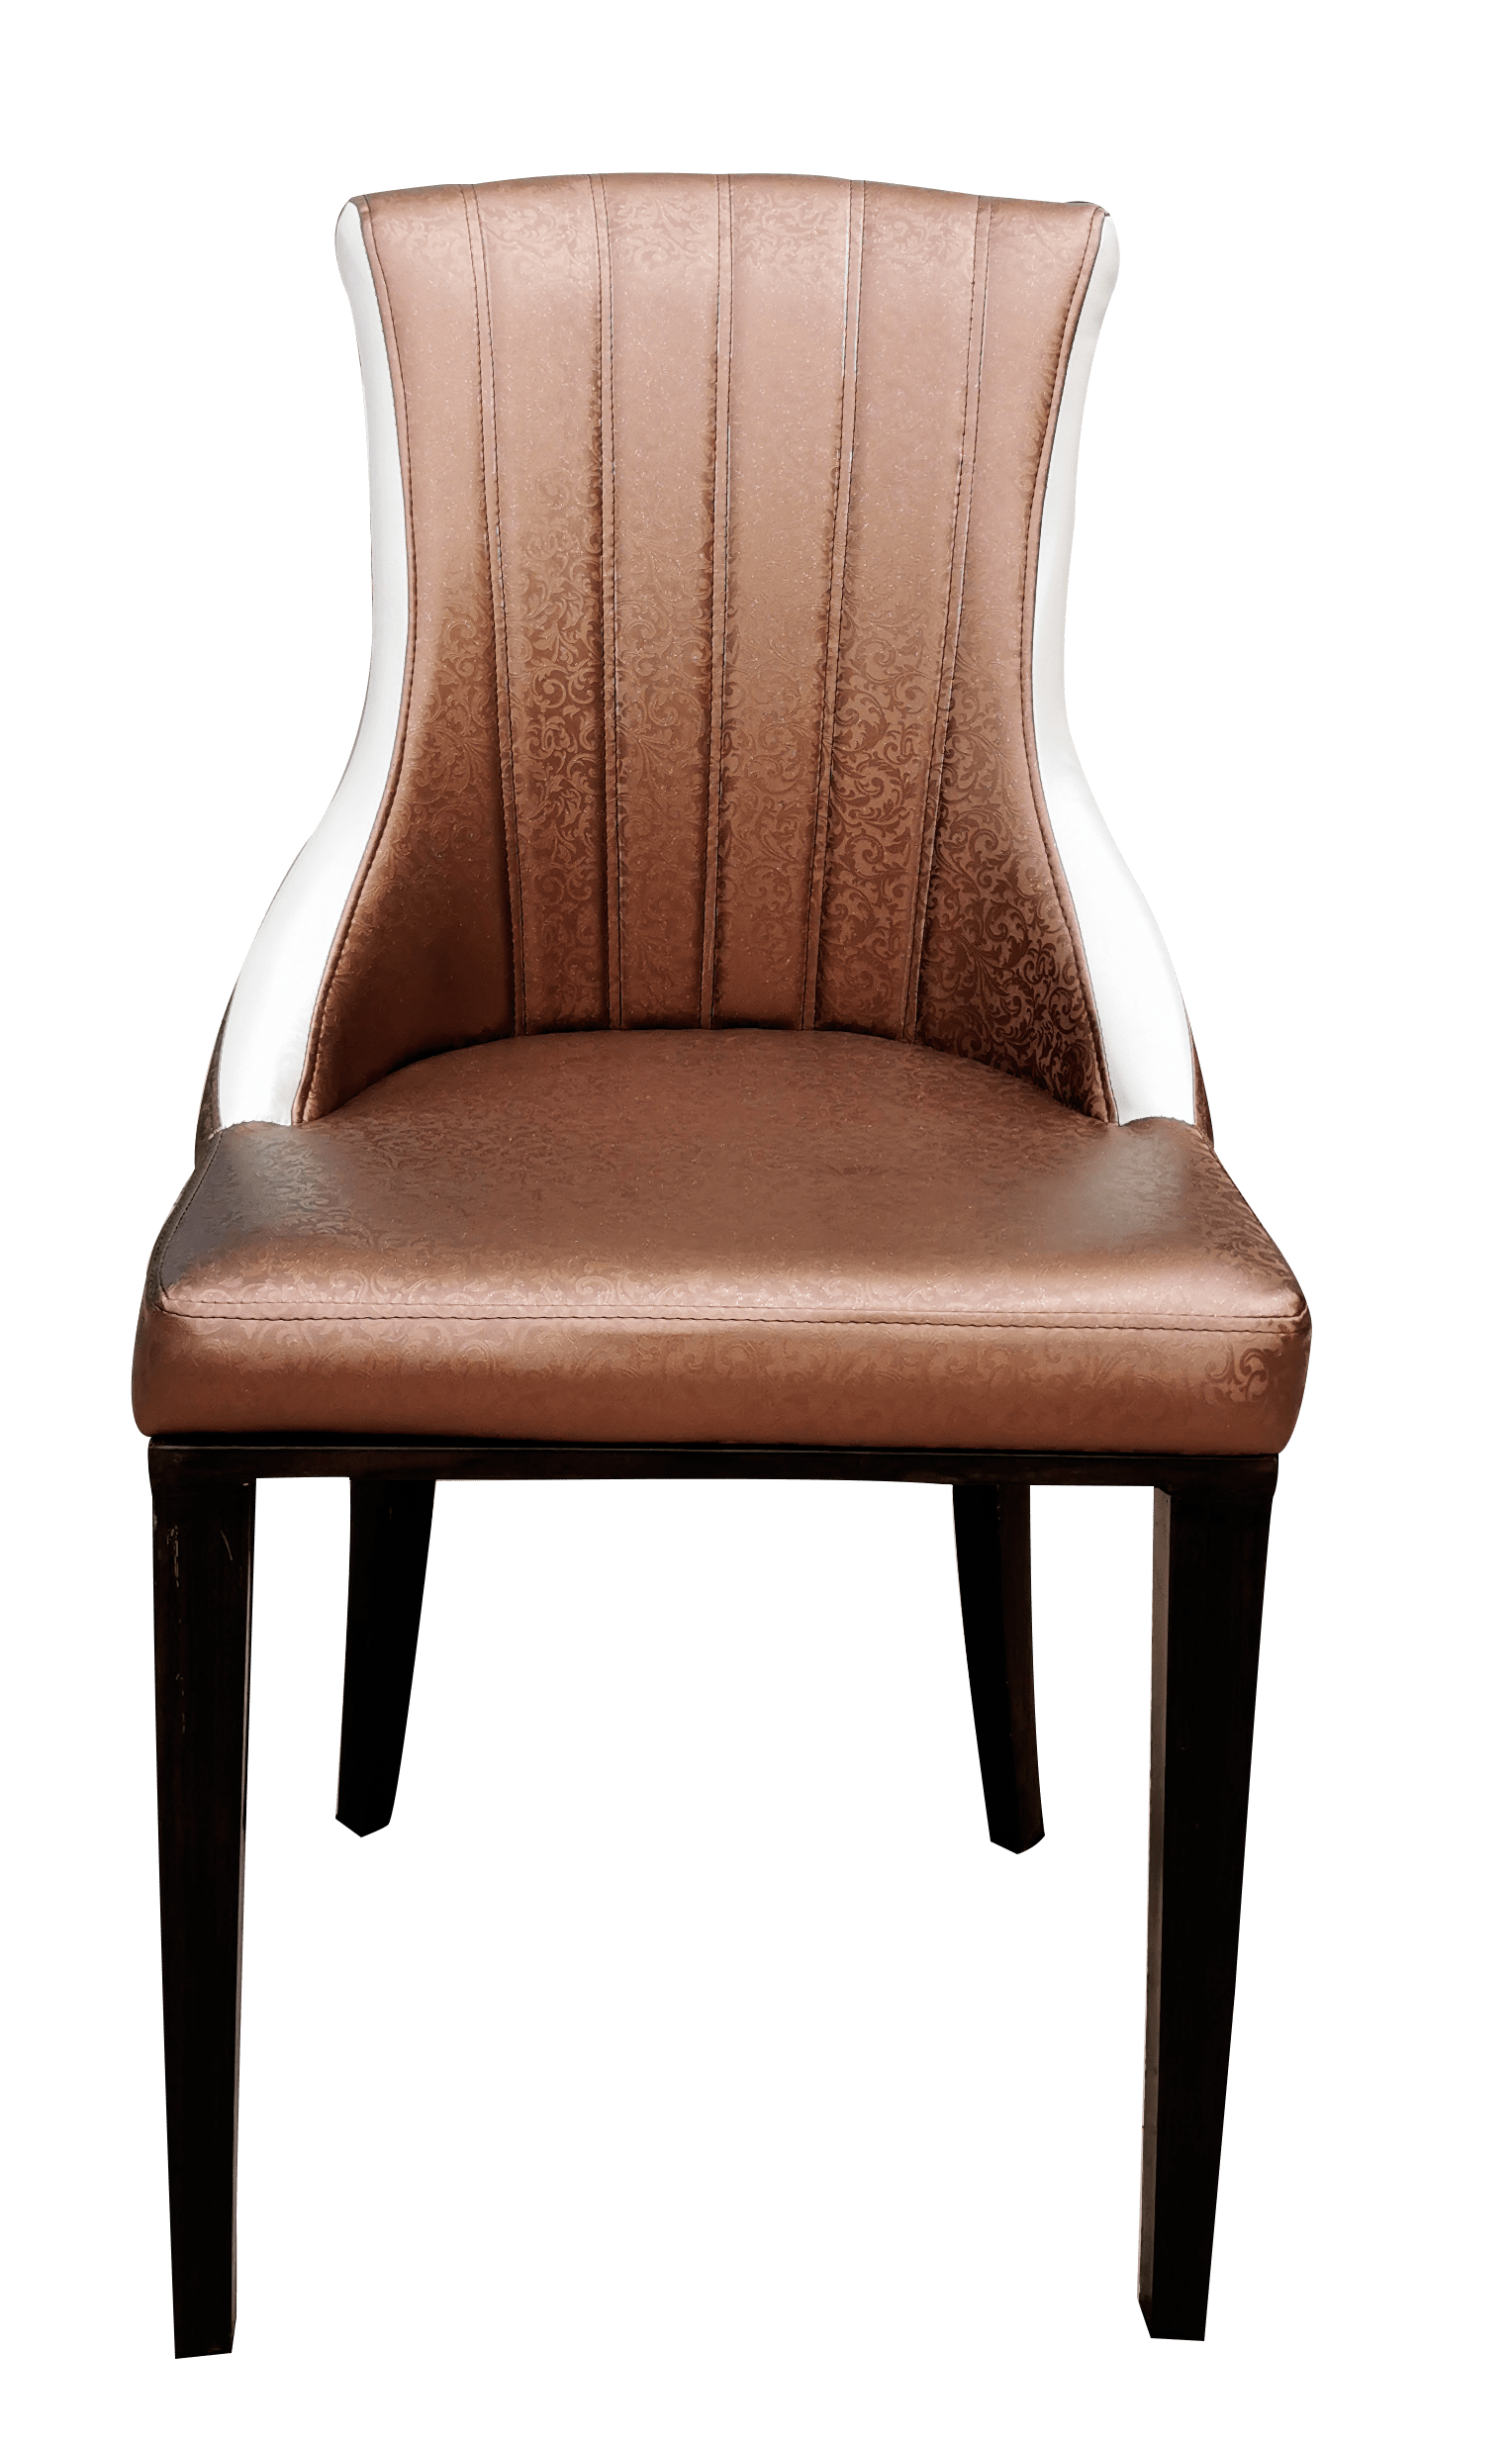 Dining Chair -  Regal Luxe DC058 - Italhouse